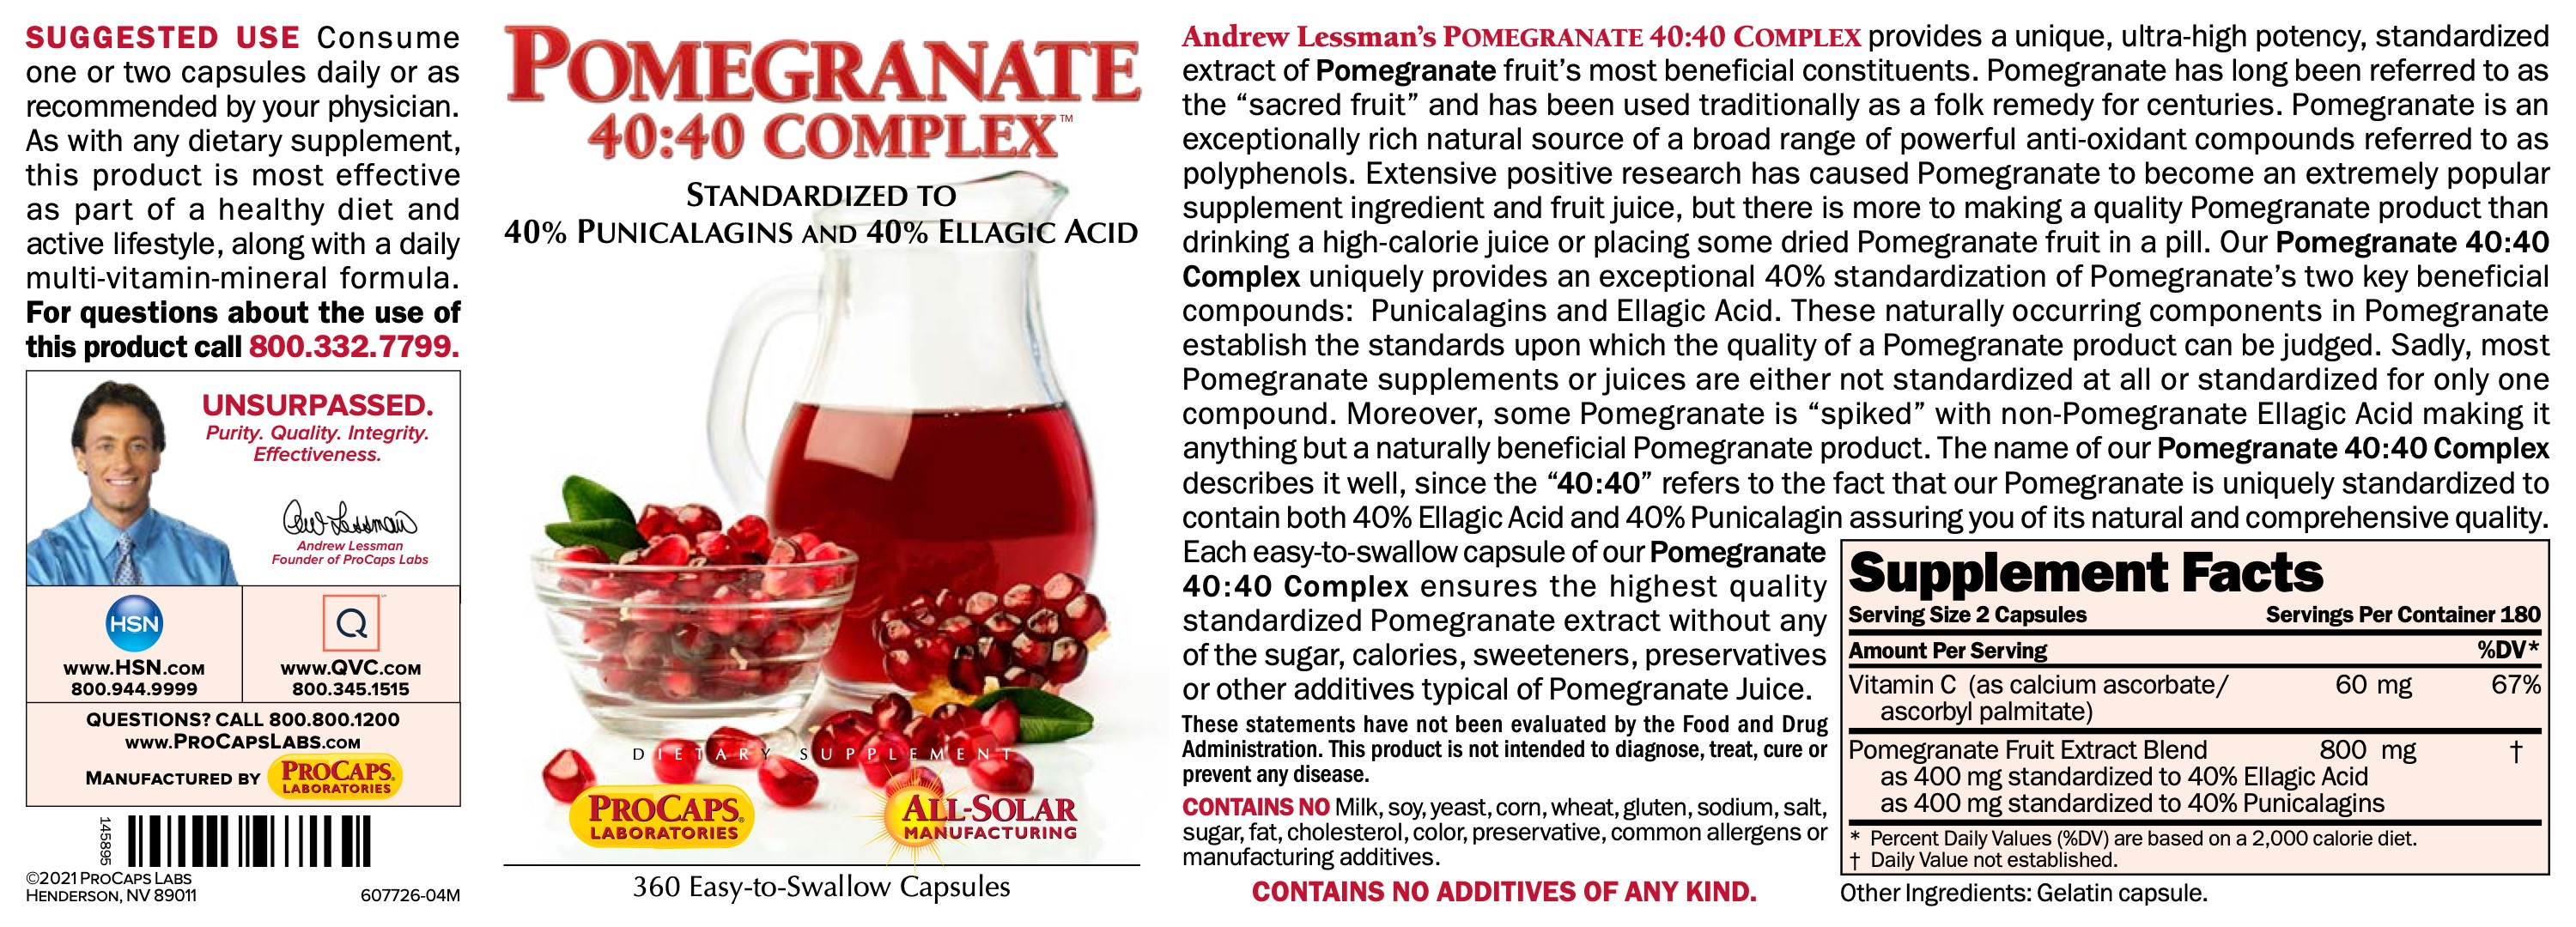 Pomegranate-40-40-Complex-Capsules-Anti-oxidants